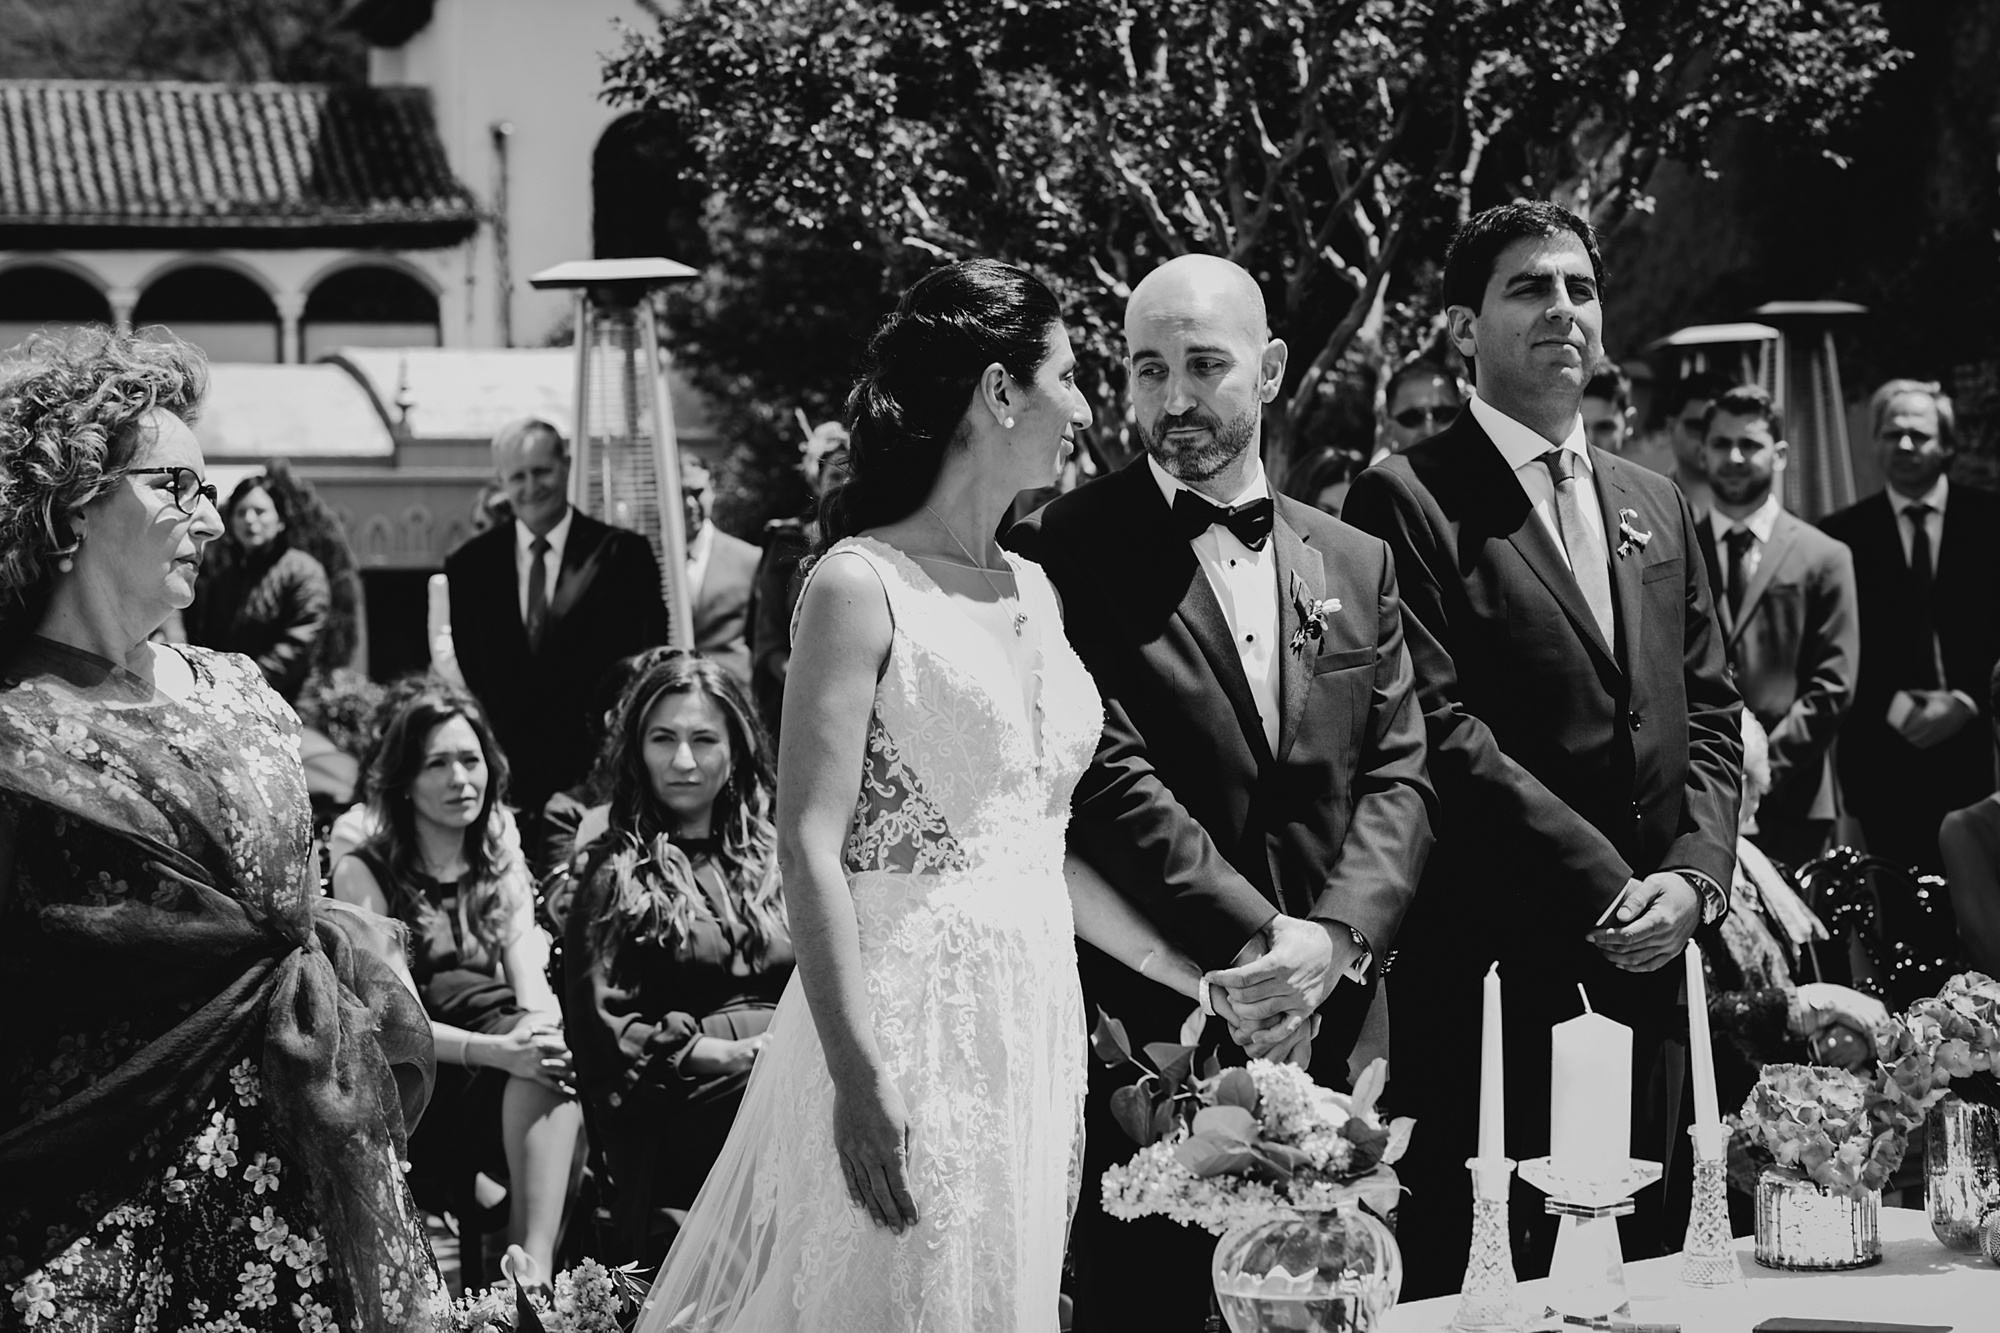 destination wedding photographer granada, cristina ruiz foto